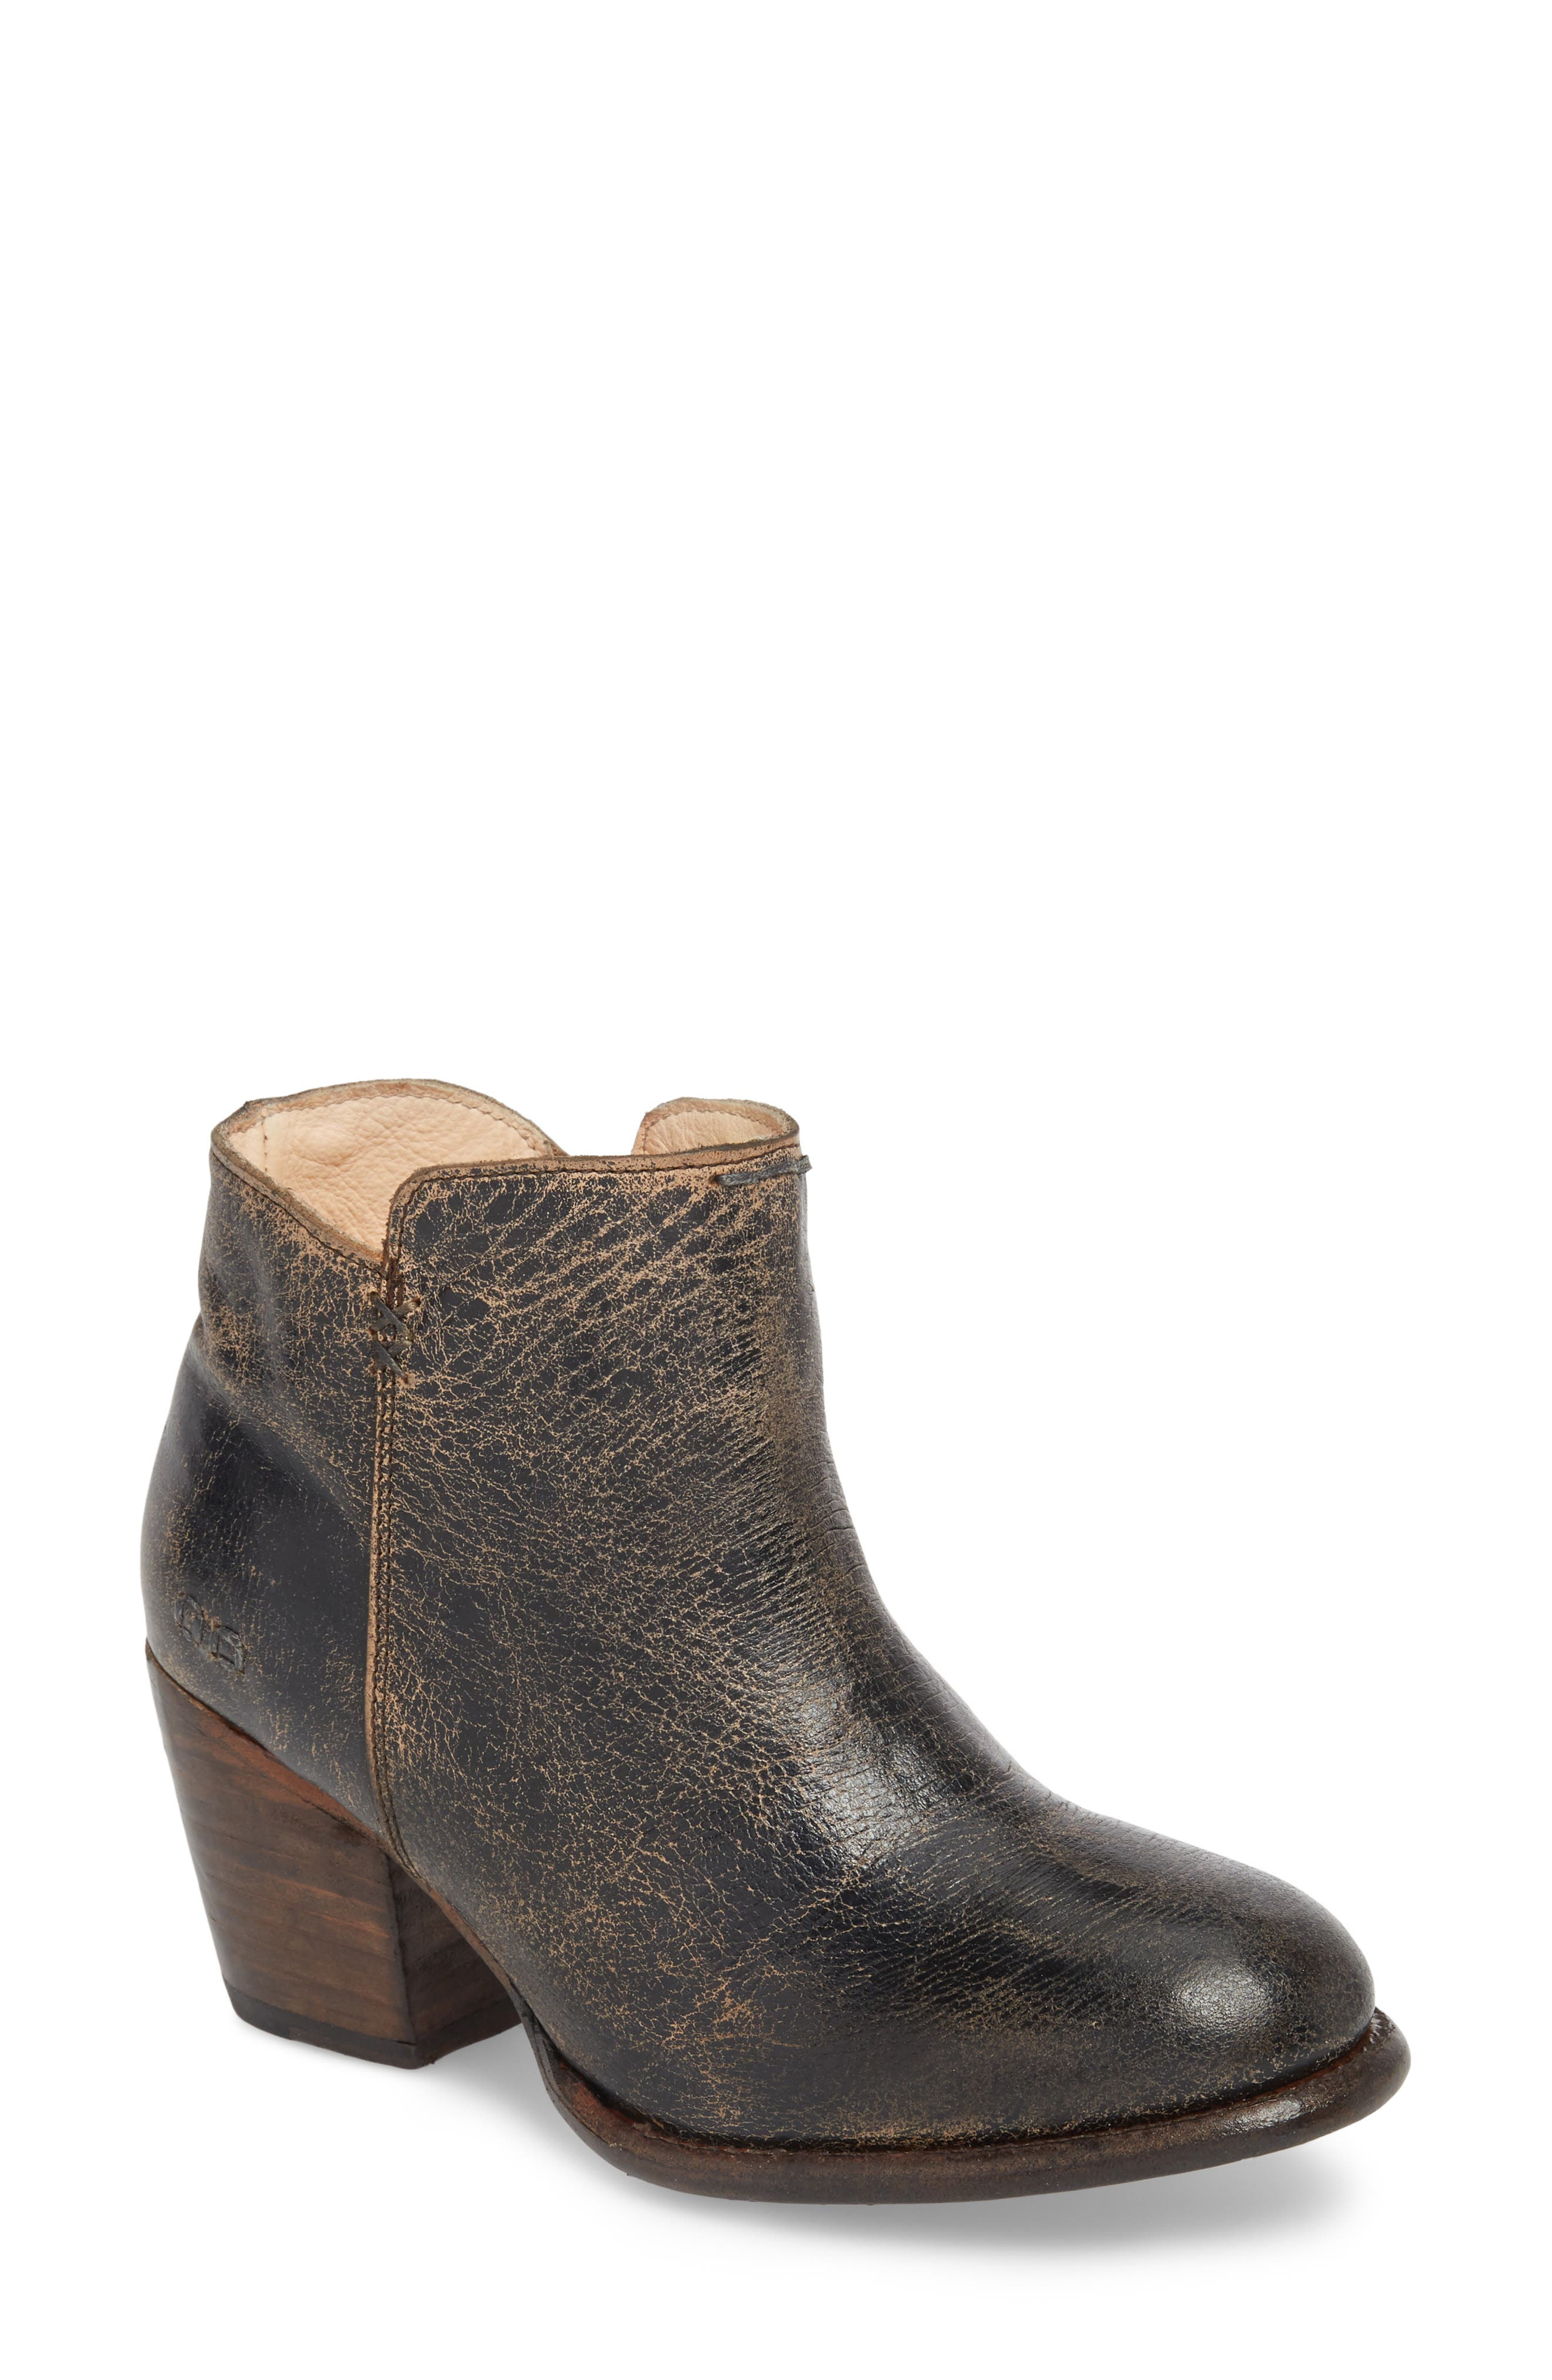 Yell Bootie,                         Main,                         color, BLACK LUX